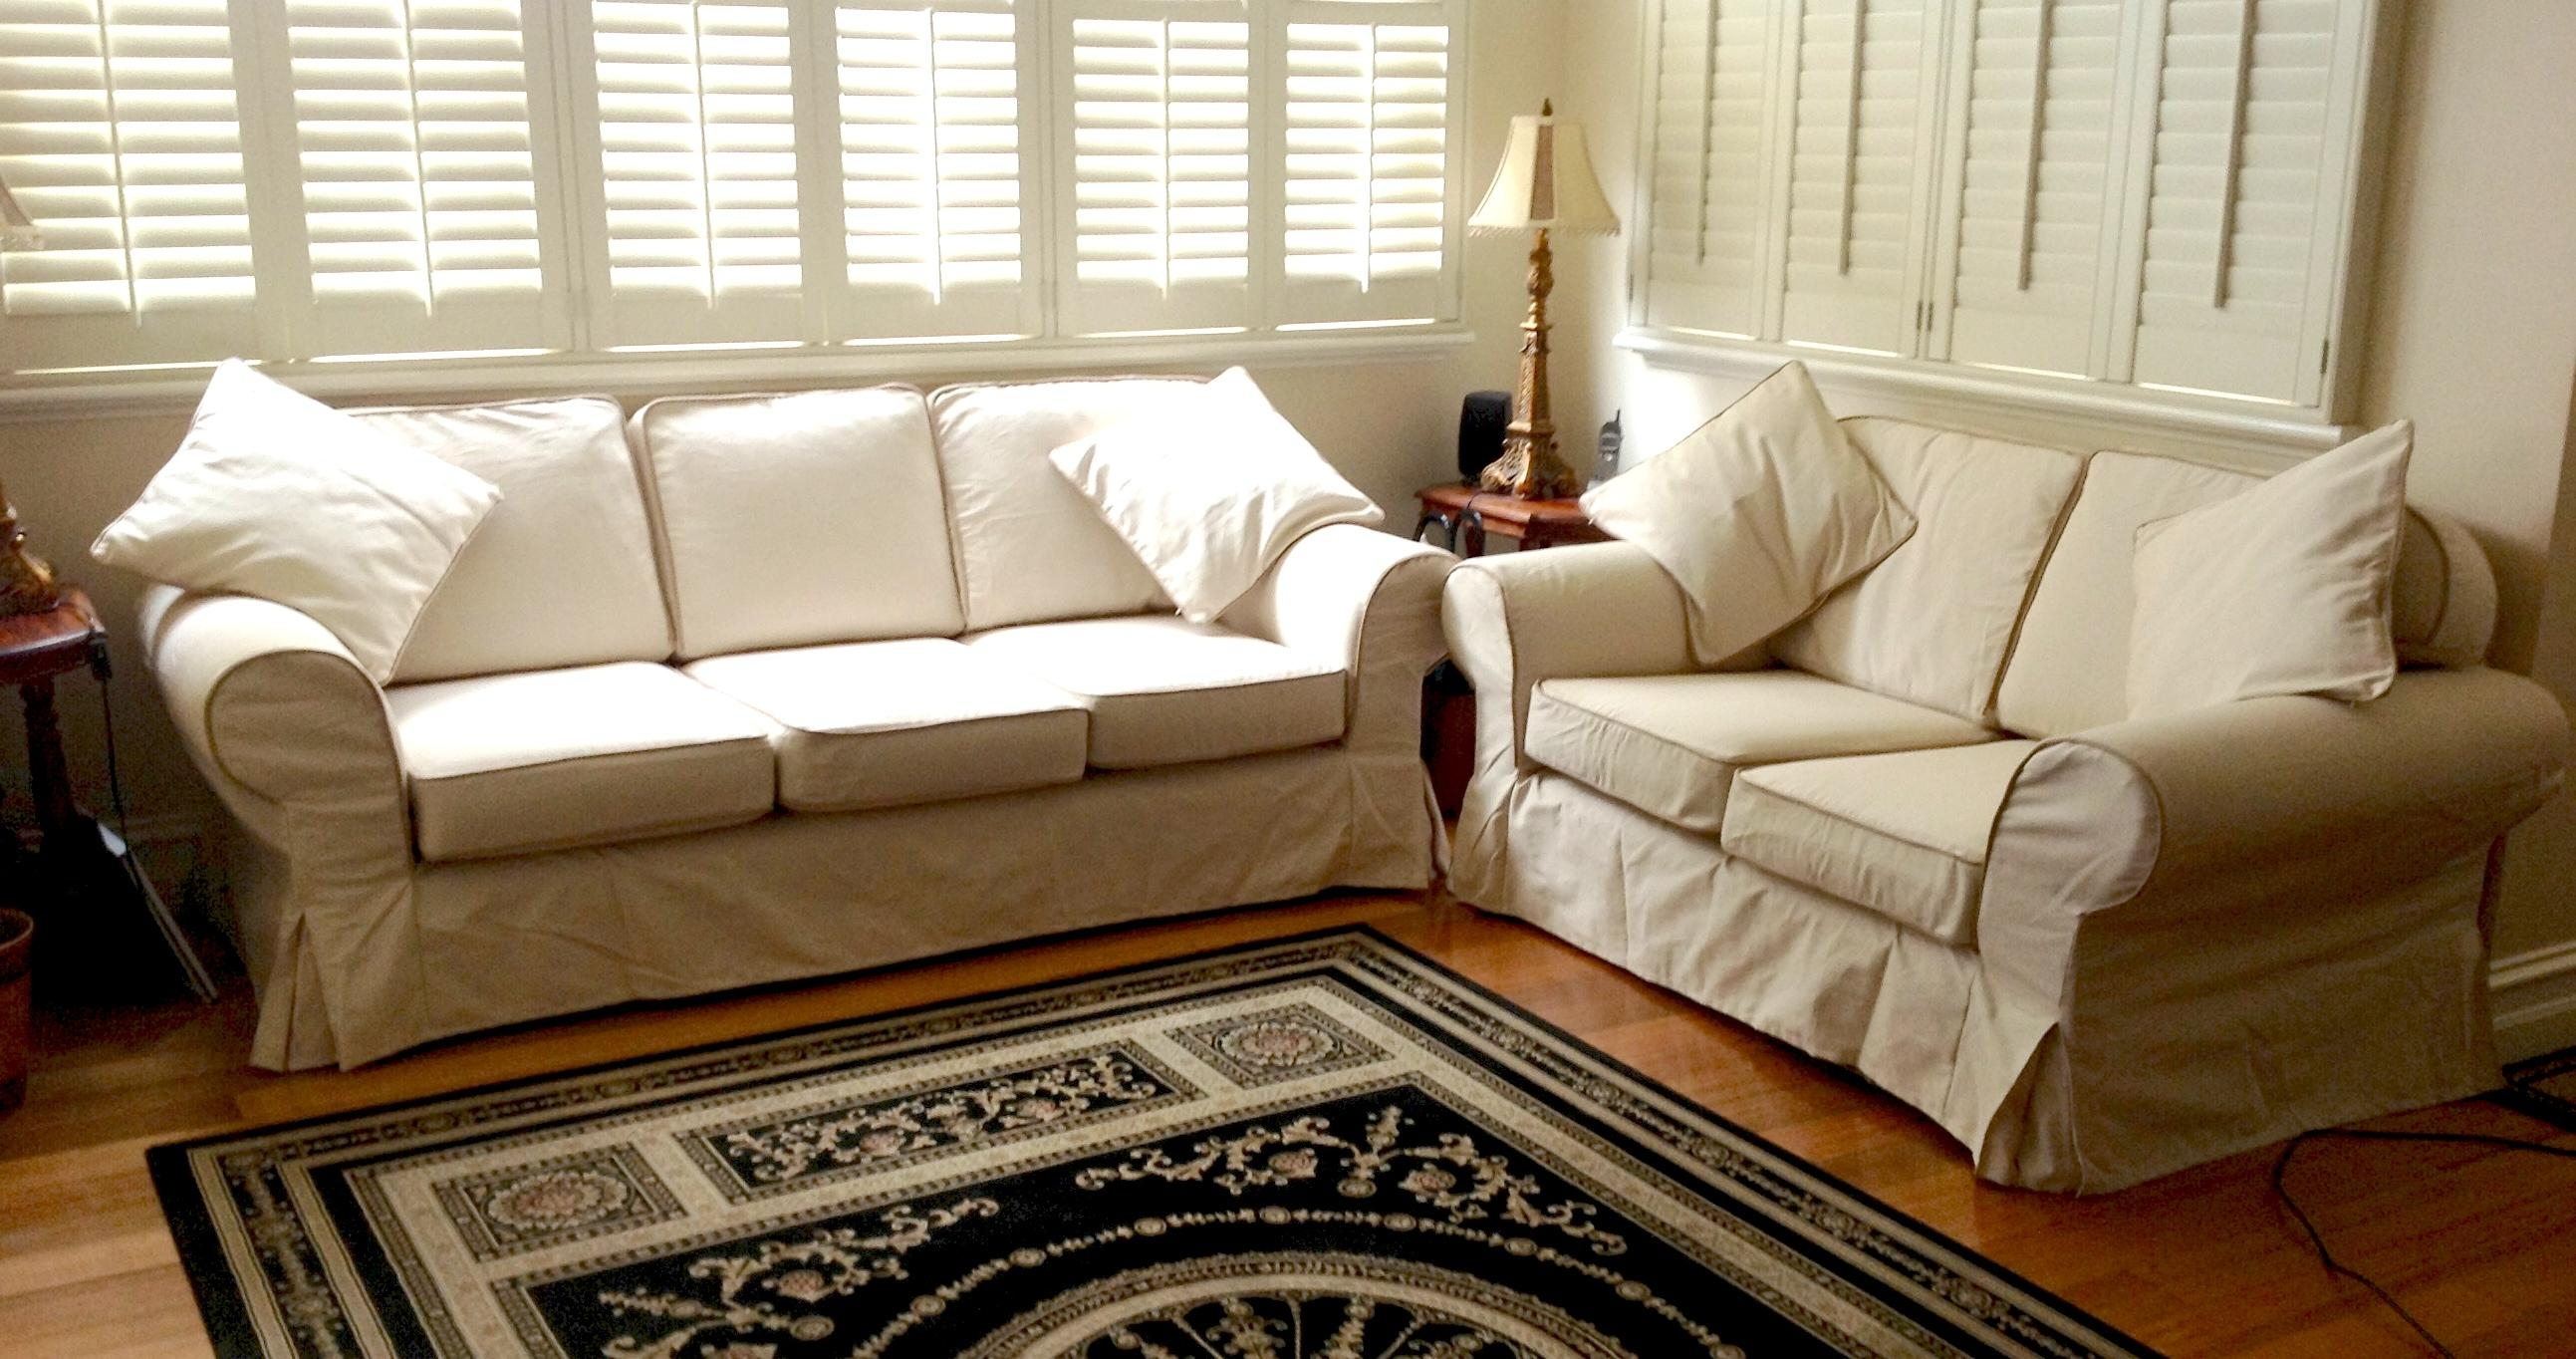 Custom Slipcovers And Couch Cover For Any Sofa Online With Covers For Sofas (Image 2 of 20)